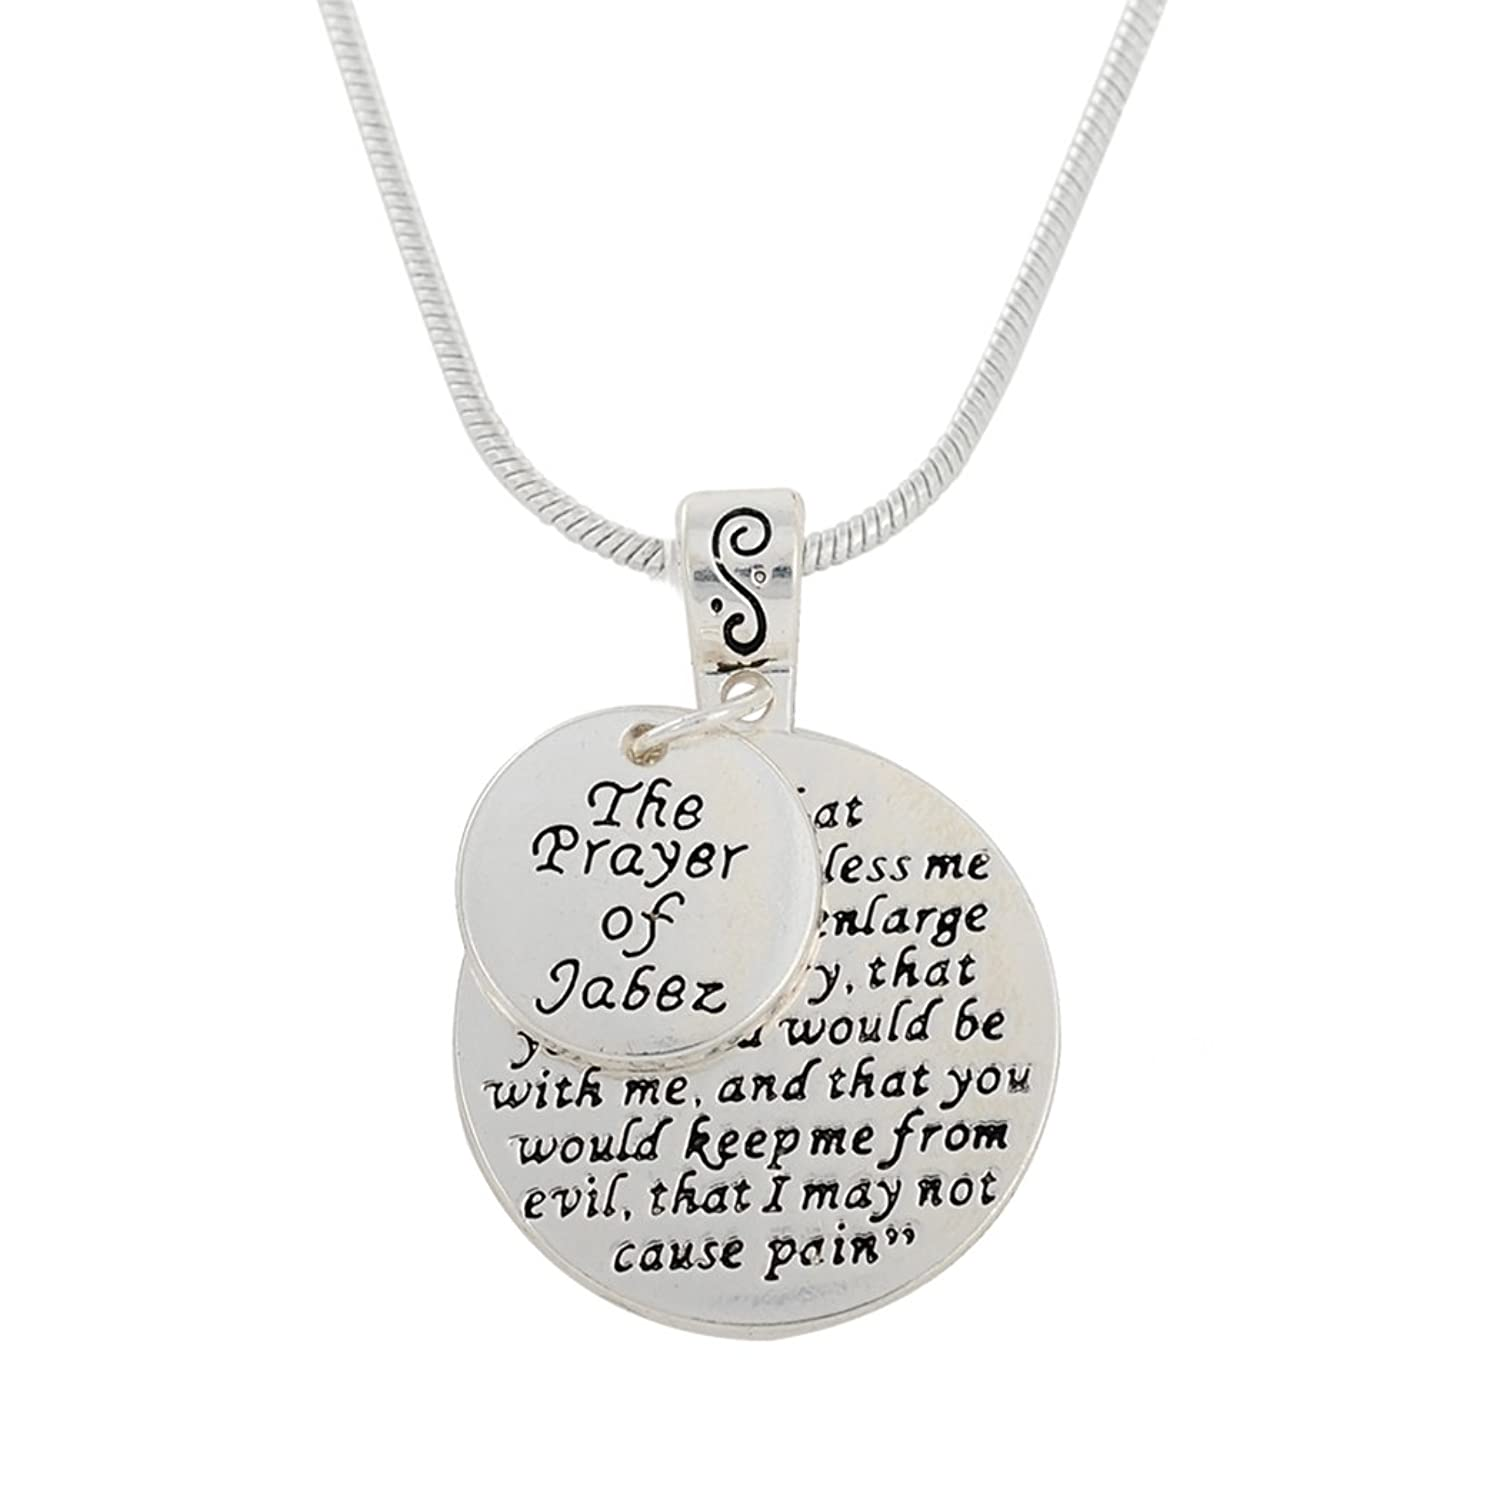 The Prayer of Jabez Two Coins Budda Words Engraved Pendant Necklace Jewelry for Men and Women